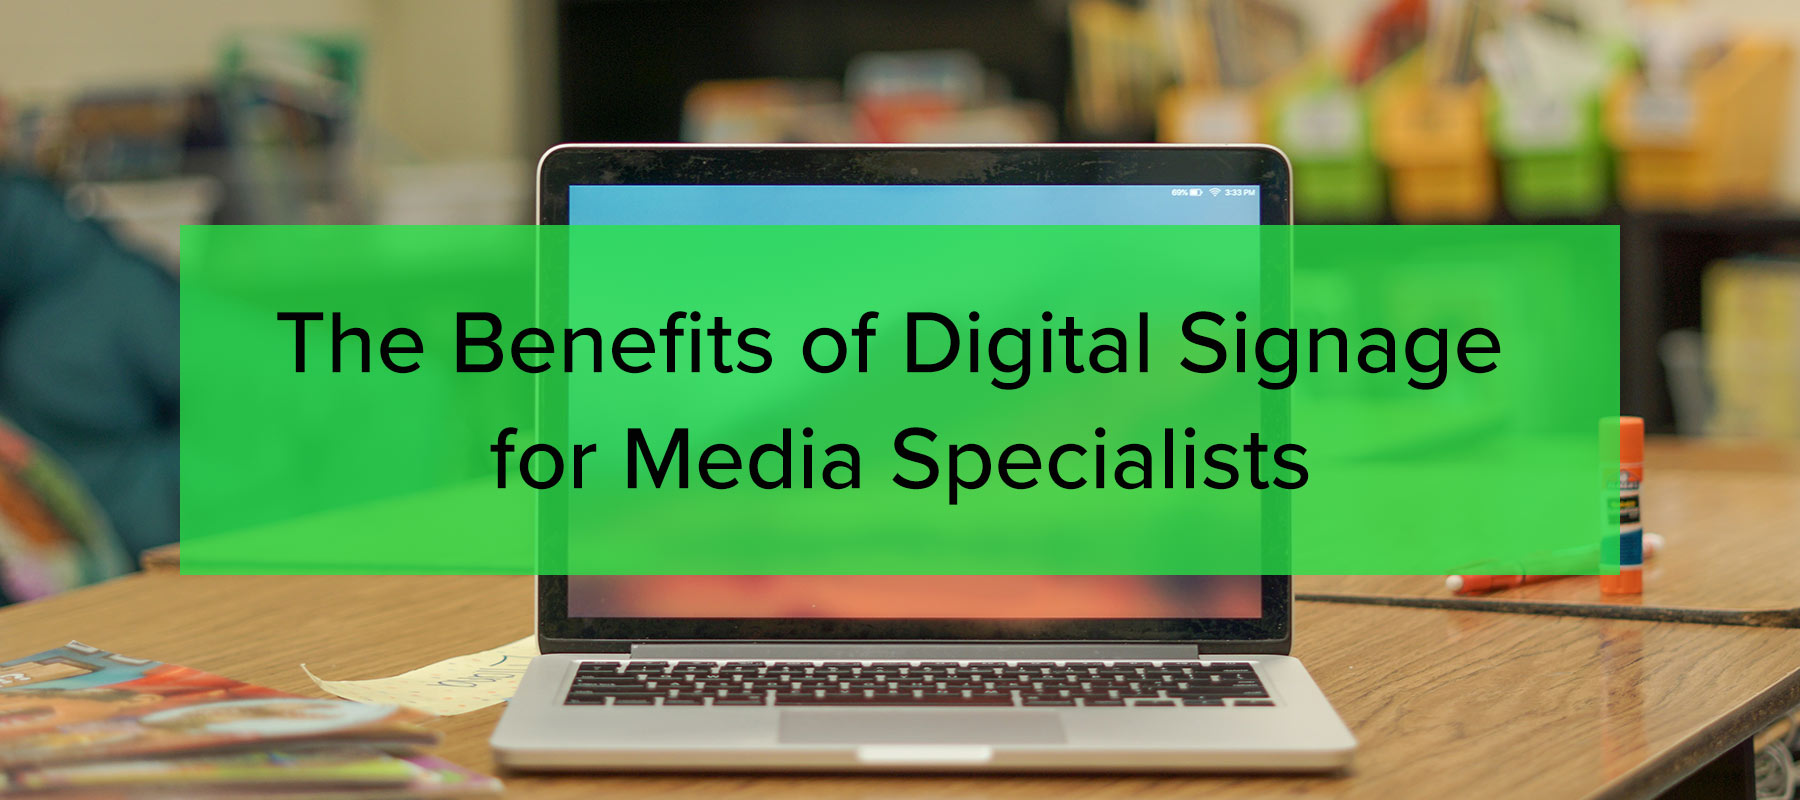 The Benefits of Digital Signage for Media Specialists